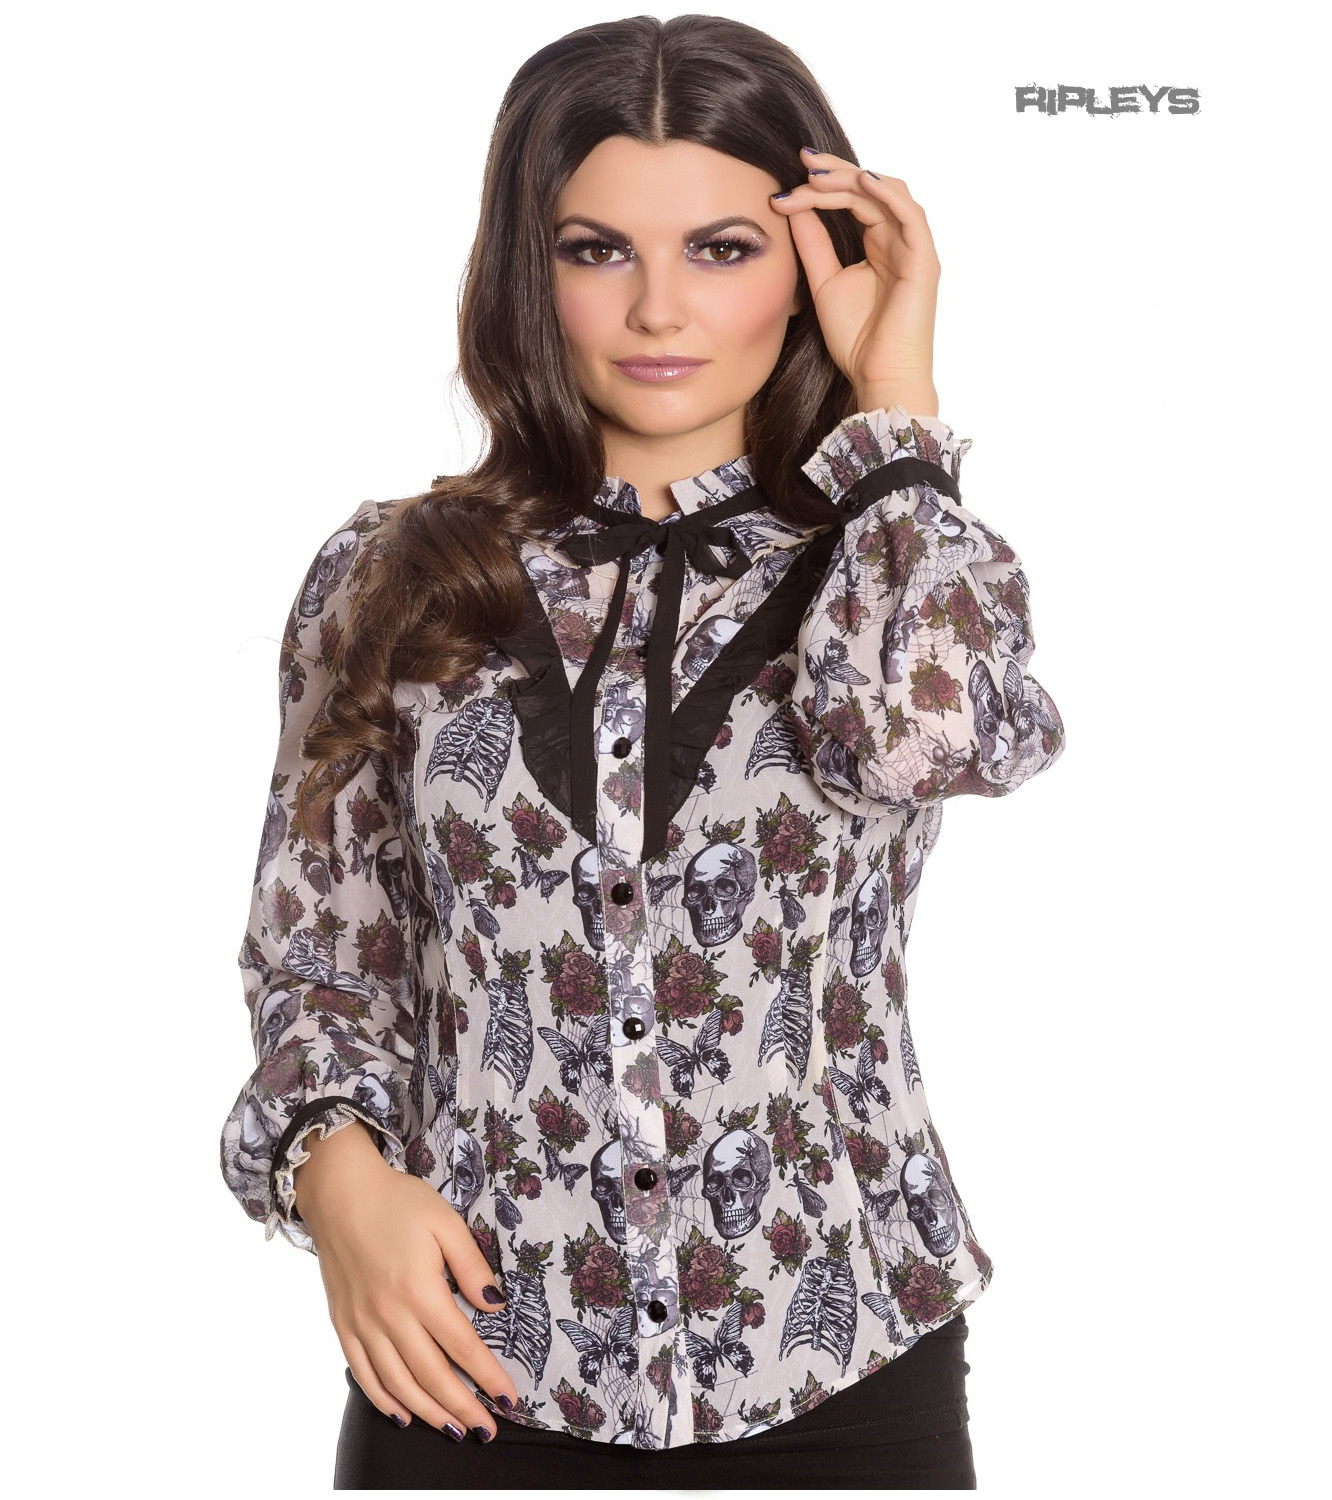 Hell-Bunny-Chiffon-Shirt-Top-Gothic-Skulls-Roses-GRISELDA-Blouse-Ivory-All-Sizes thumbnail 30